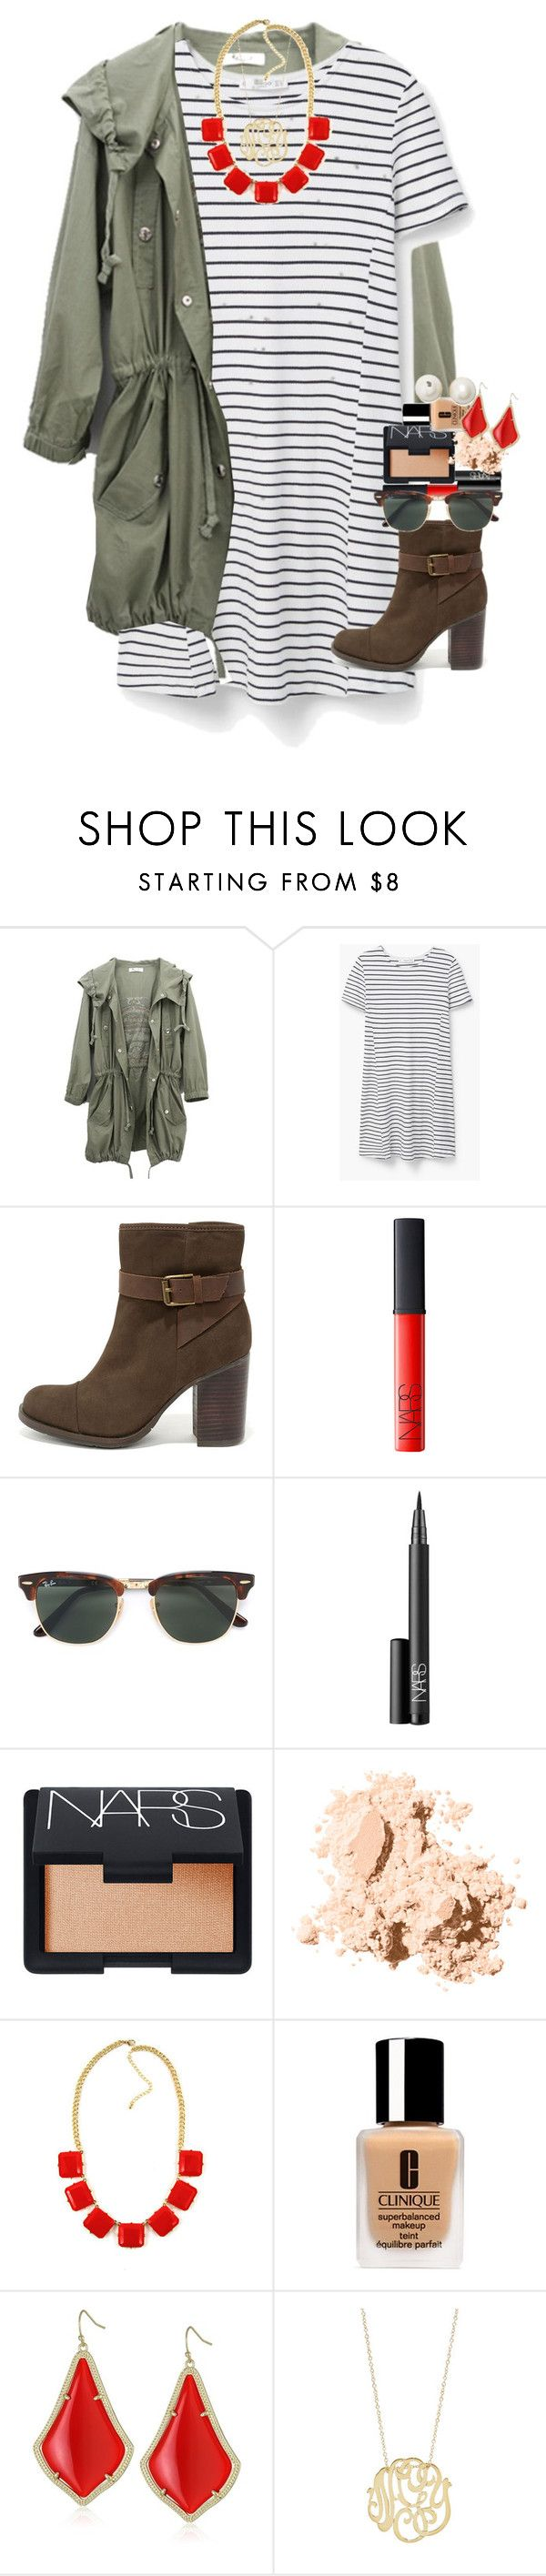 """throwback to fall"" by smbprep ❤ liked on Polyvore featuring MANGO, MIA, NARS Cosmetics, Ray-Ban, Bobbi Brown Cosmetics, Clinique, Kendra Scott, Ginette NY and Kate Spade"